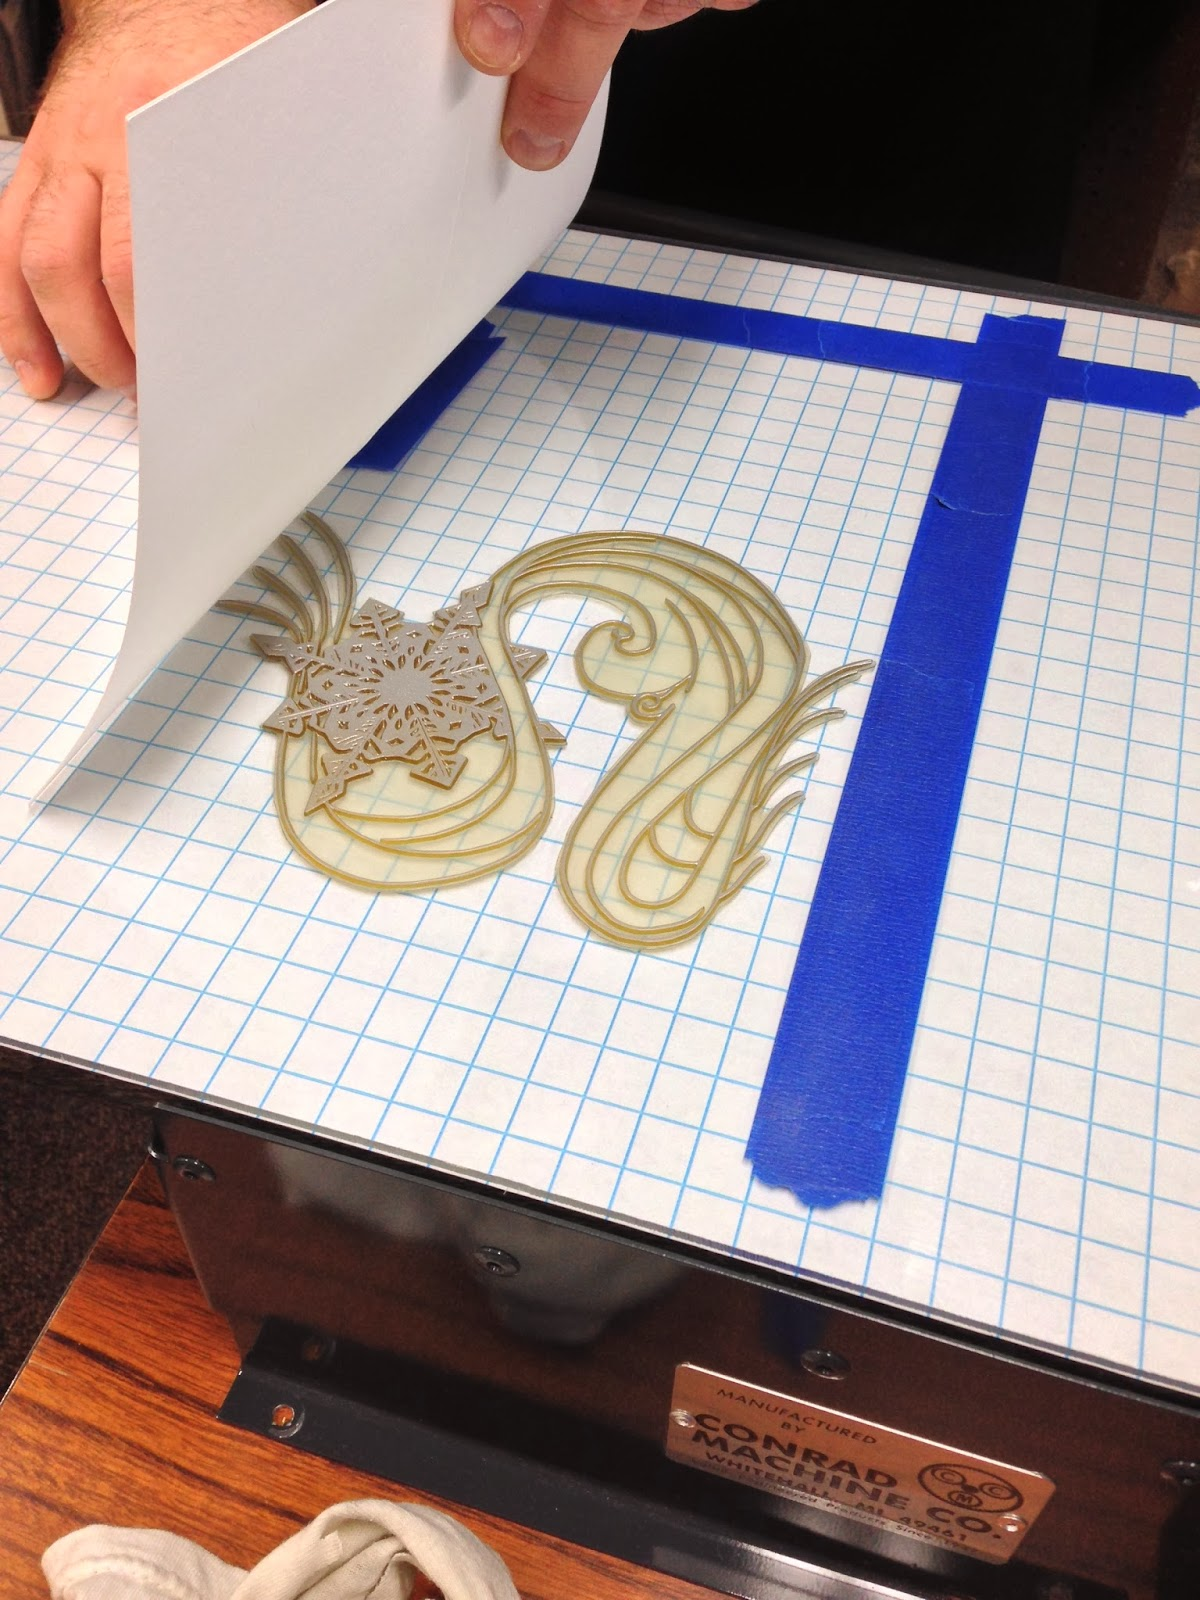 The Snowflake design being printed.